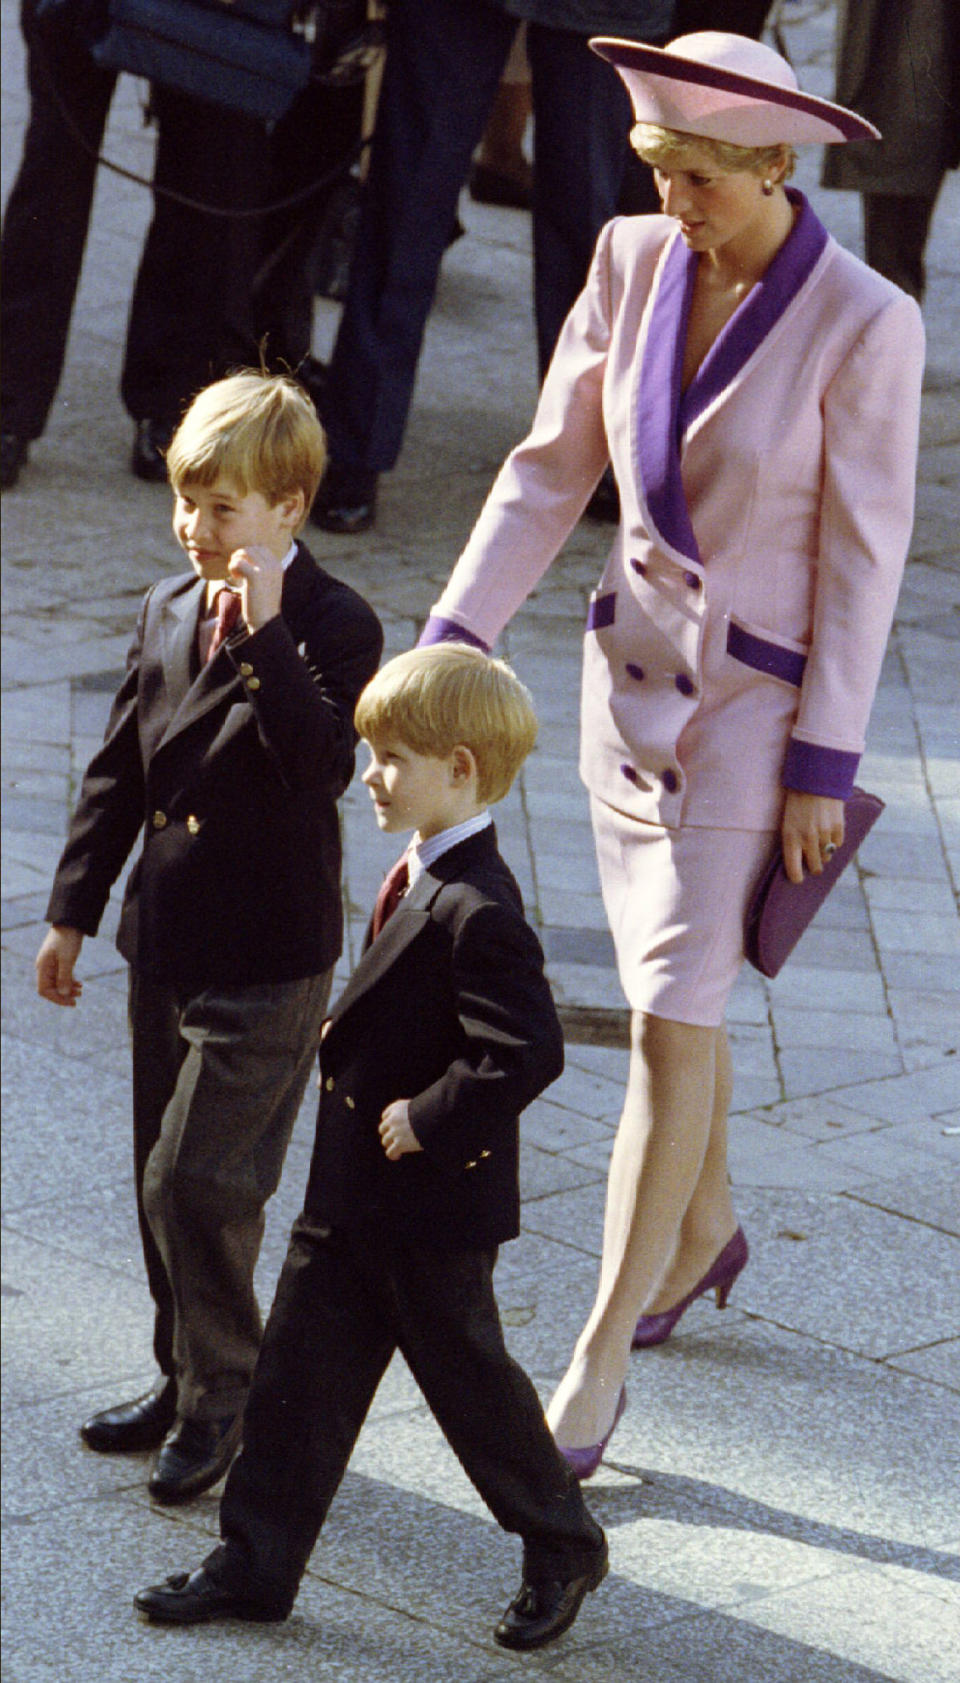 Diana, Princess of Wales is seen arriving at a memorial service with her sons William (L) and Harry during the 50th anniversary of the Blitz of London in this October 1990 file photograph. . Britain's Prince William is to marry his long-term girlfriend Kate Middleton next year, Buckingham Palace said on November 16, 2010. REUTERS/Chris Helgren/Files   (BRITAIN - Tags: ENTERTAINMENT SOCIETY ROYALS)